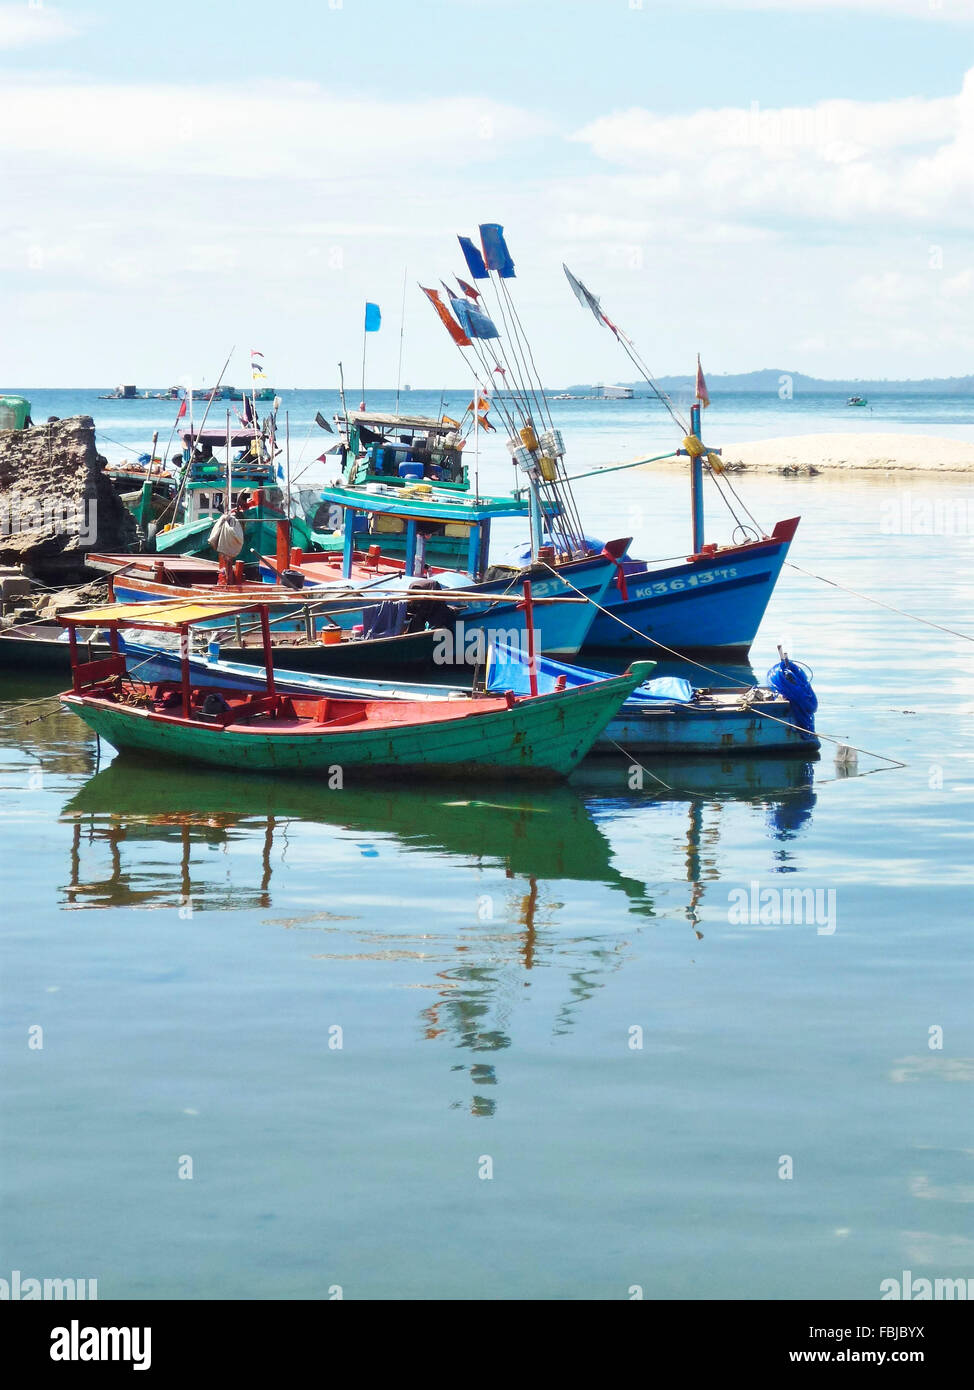 several fishing boats, reflections in the water, harbour, Phú Quoc, Vietnam Stock Photo